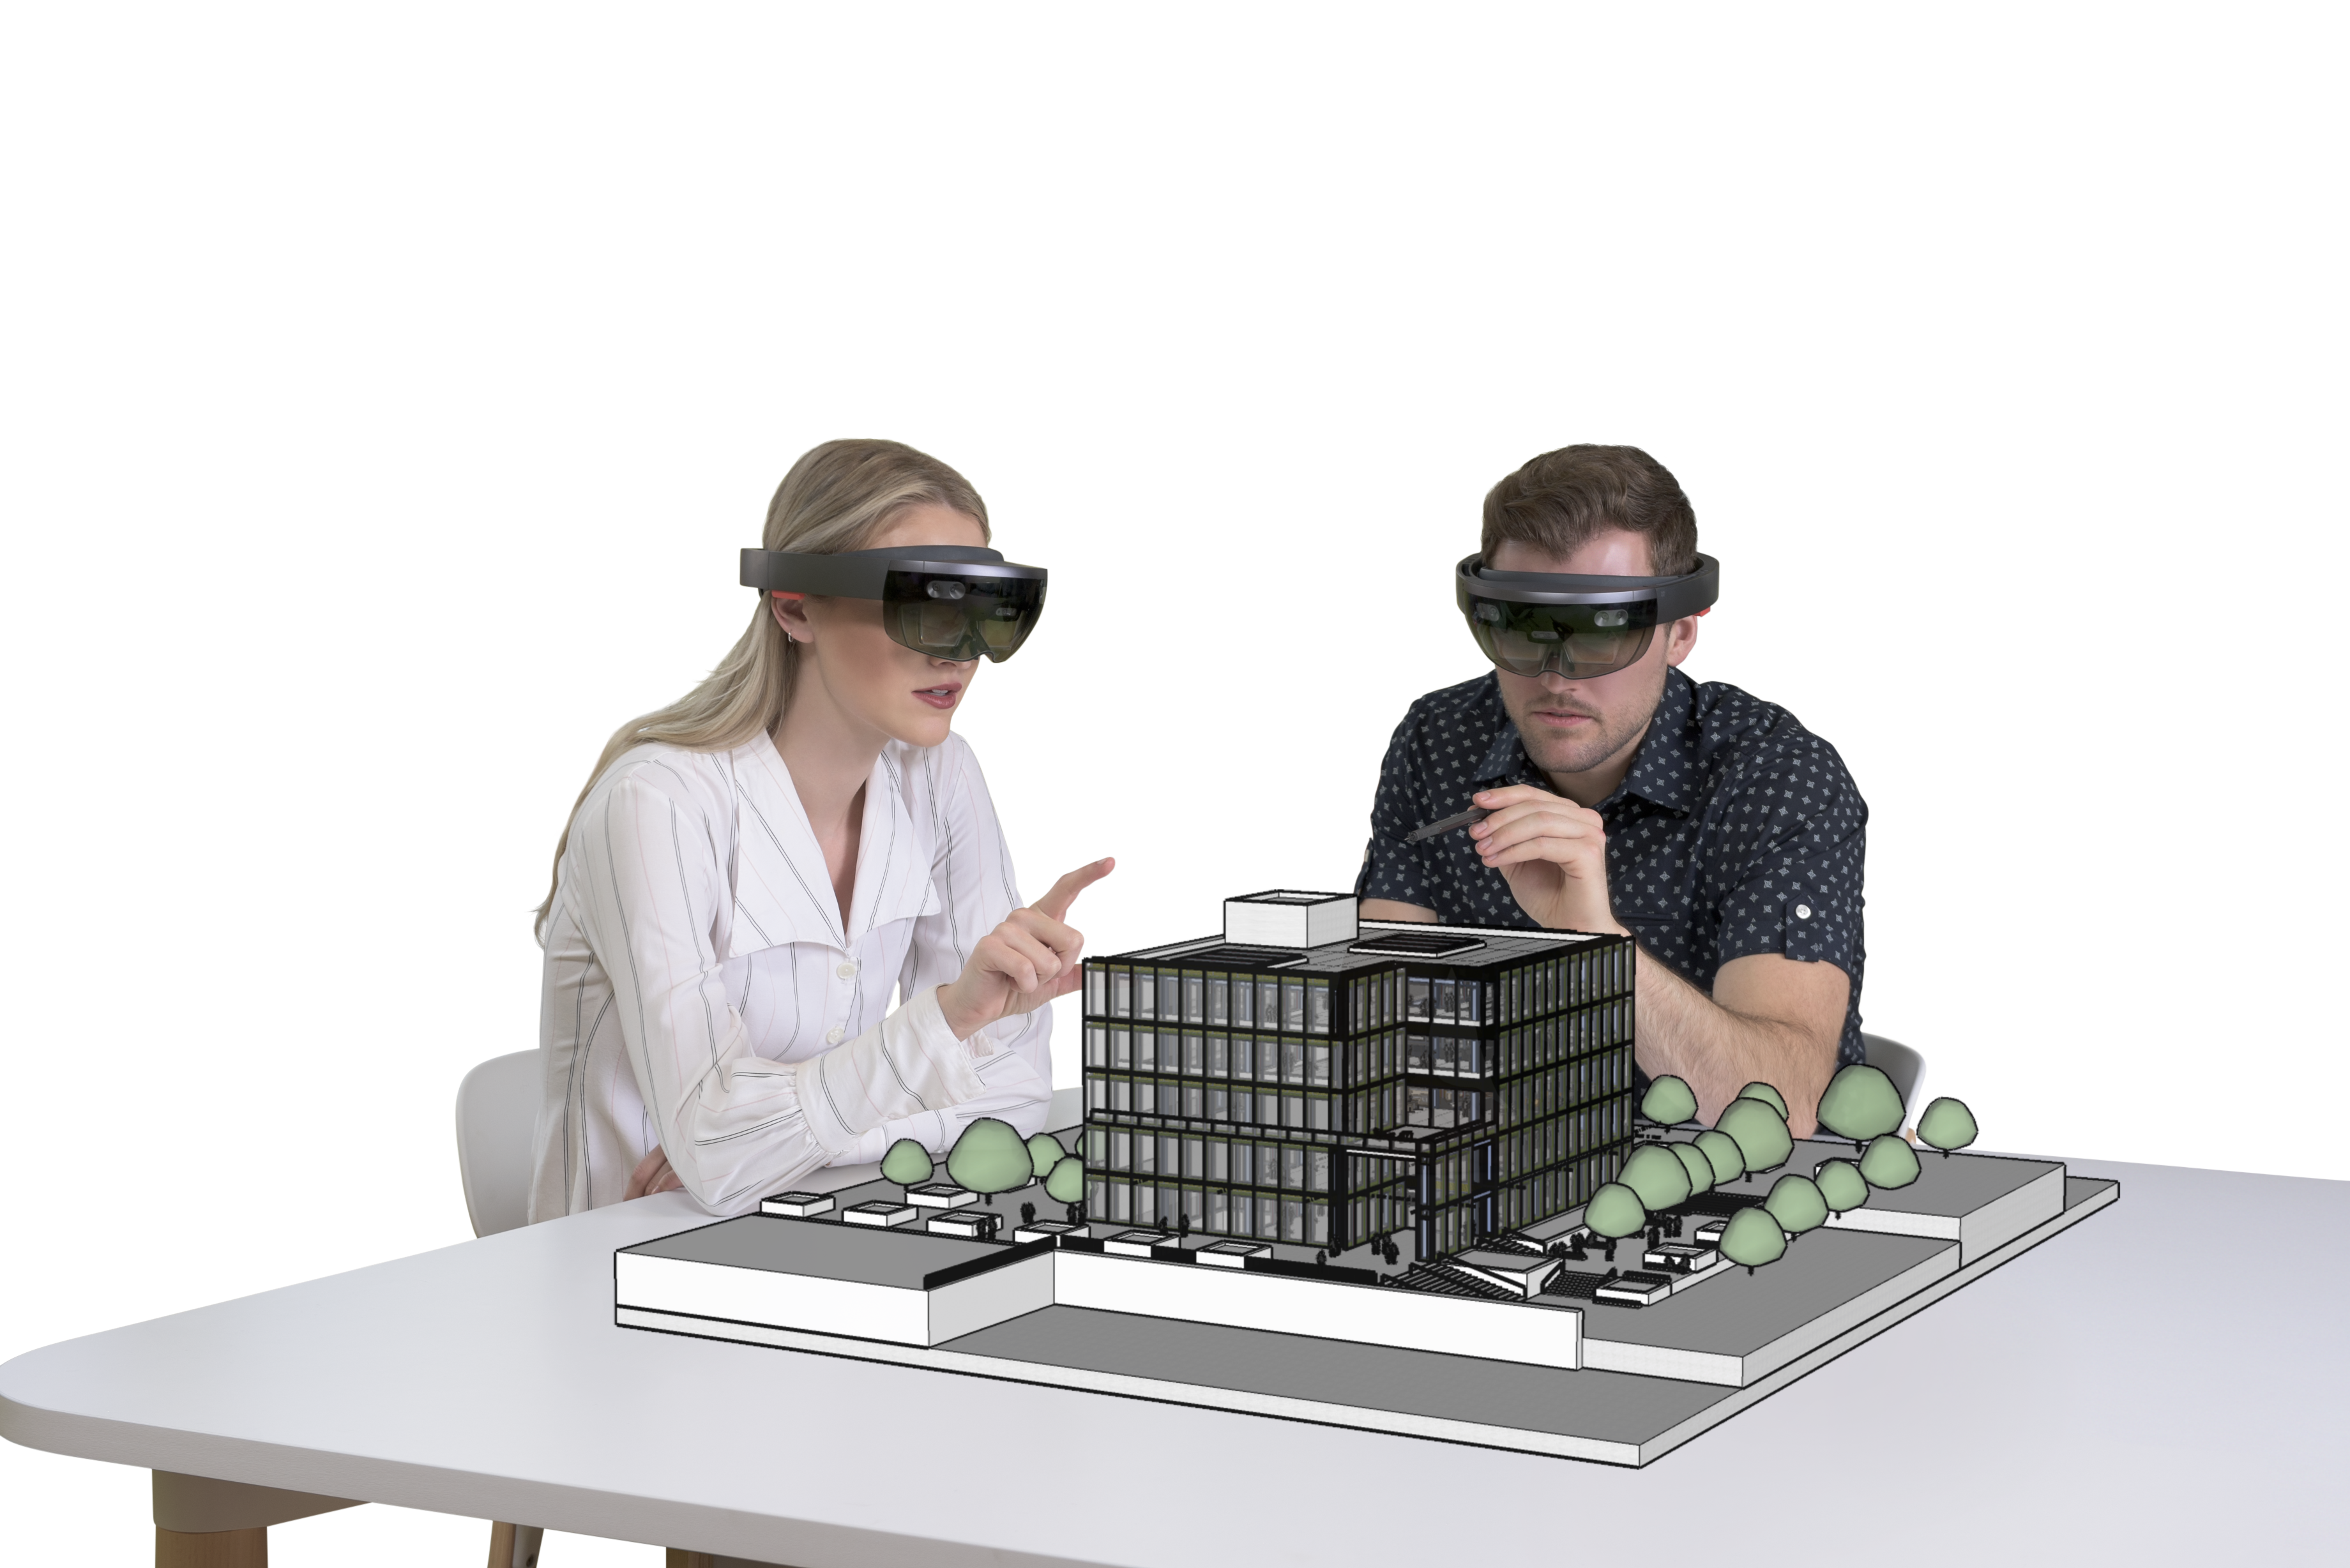 Landscape architecture in mixed reality